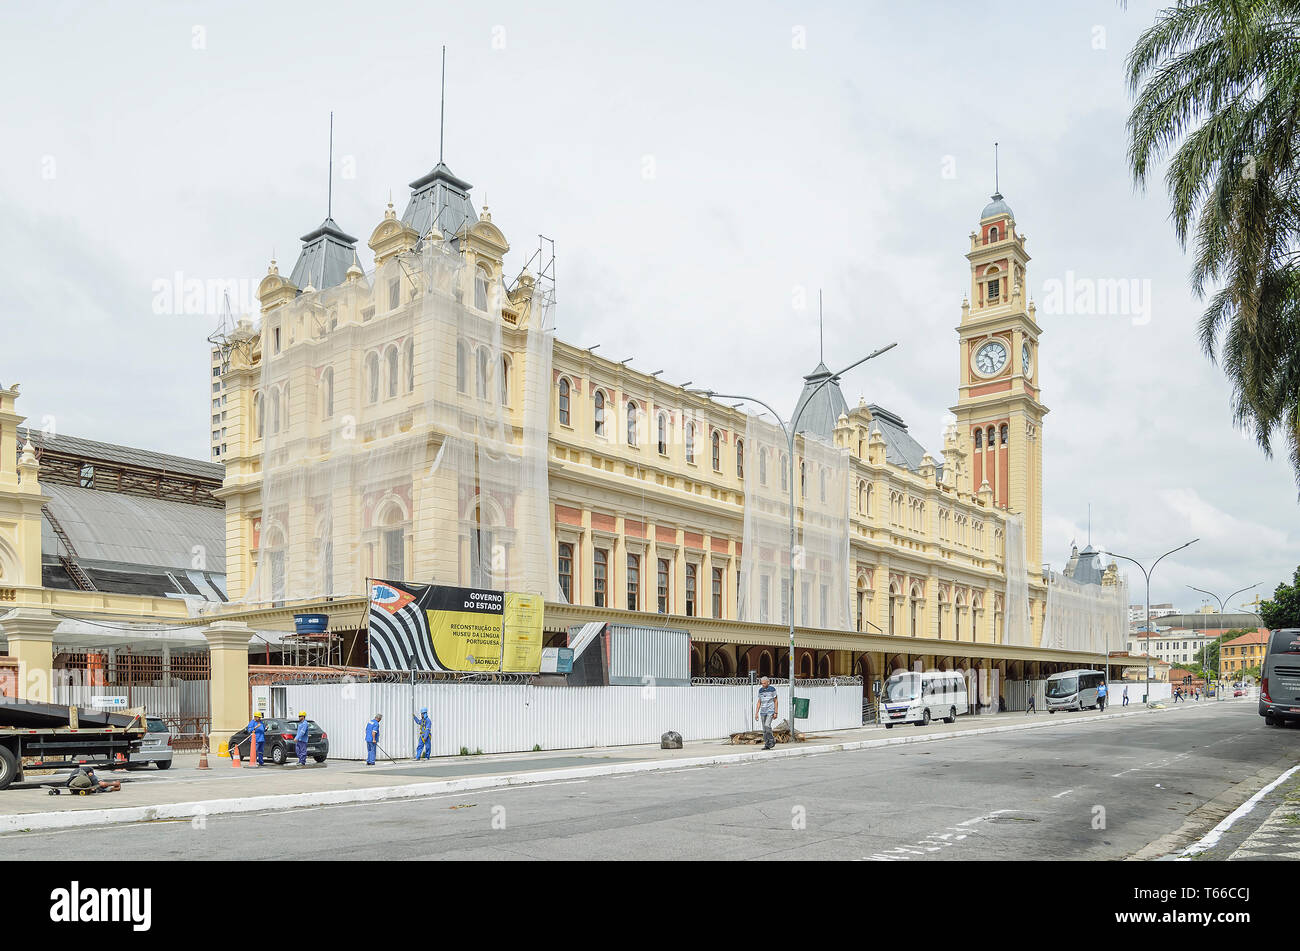 Sao Paulo SP, Brazil - February 27, 2019: Museum of Portuguese Language (Museu da Lingua Portuguesa) under reform and restoration. Cultural tourist sp Stock Photo